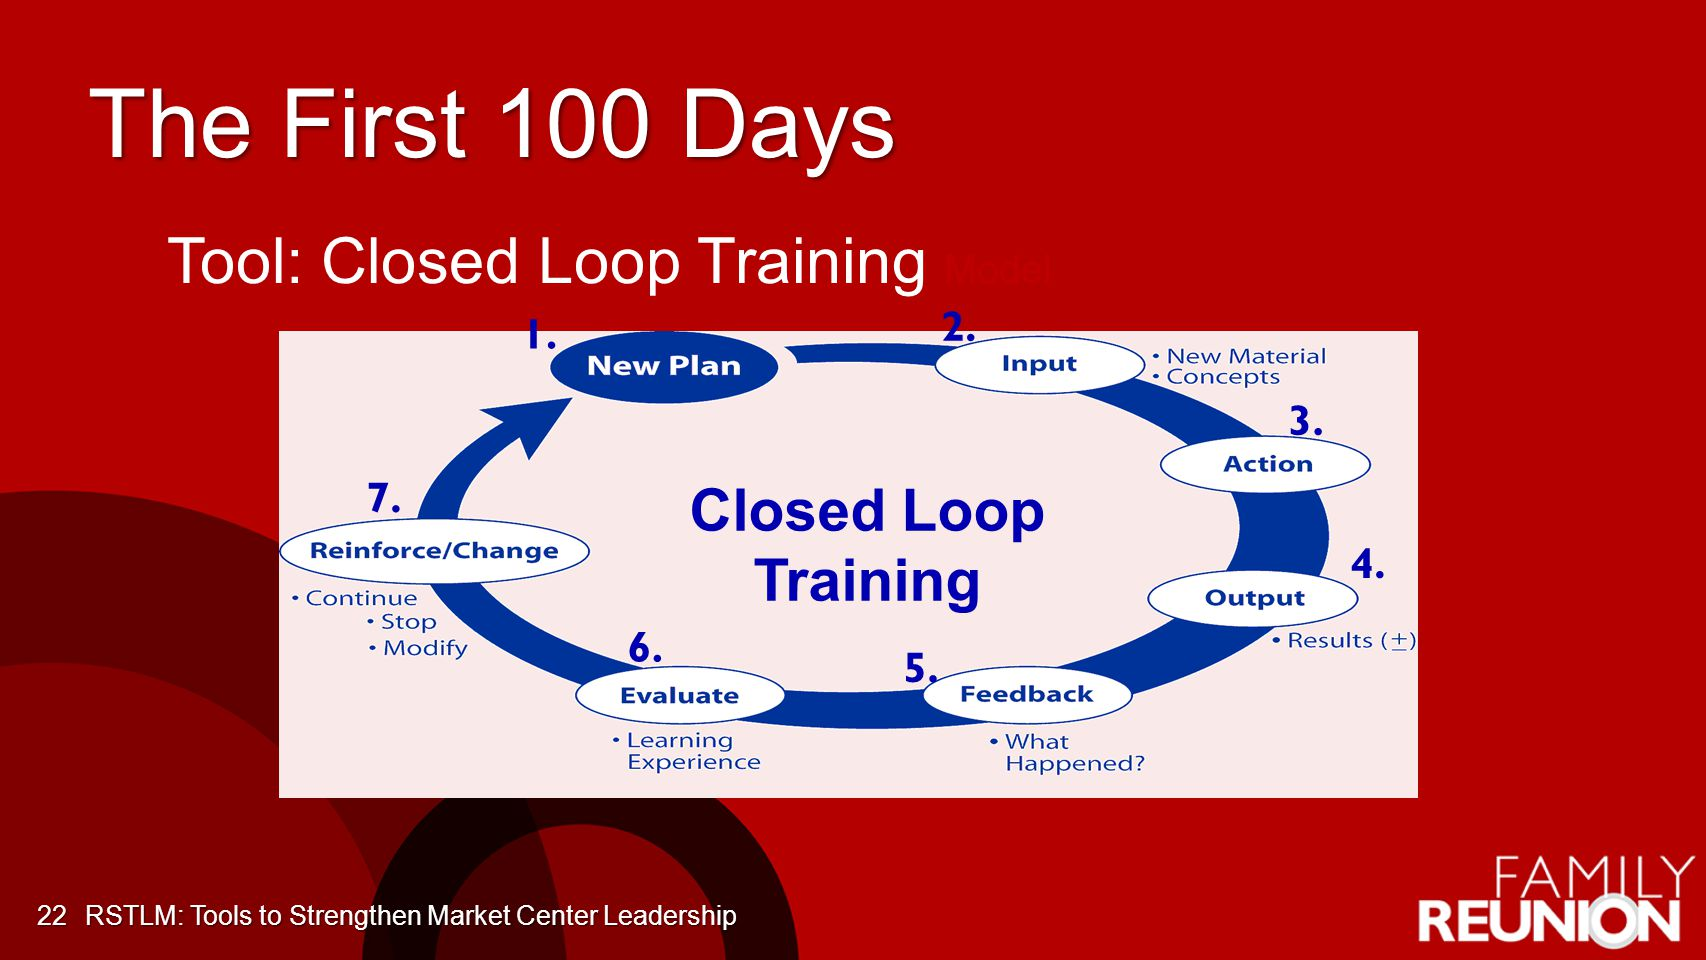 The First 100 Days 22 Tool: Closed Loop Training Model 1. 2. 3. 4. 5. 6. 7. Closed Loop Training RSTLM: Tools to Strengthen Market Center Leadership